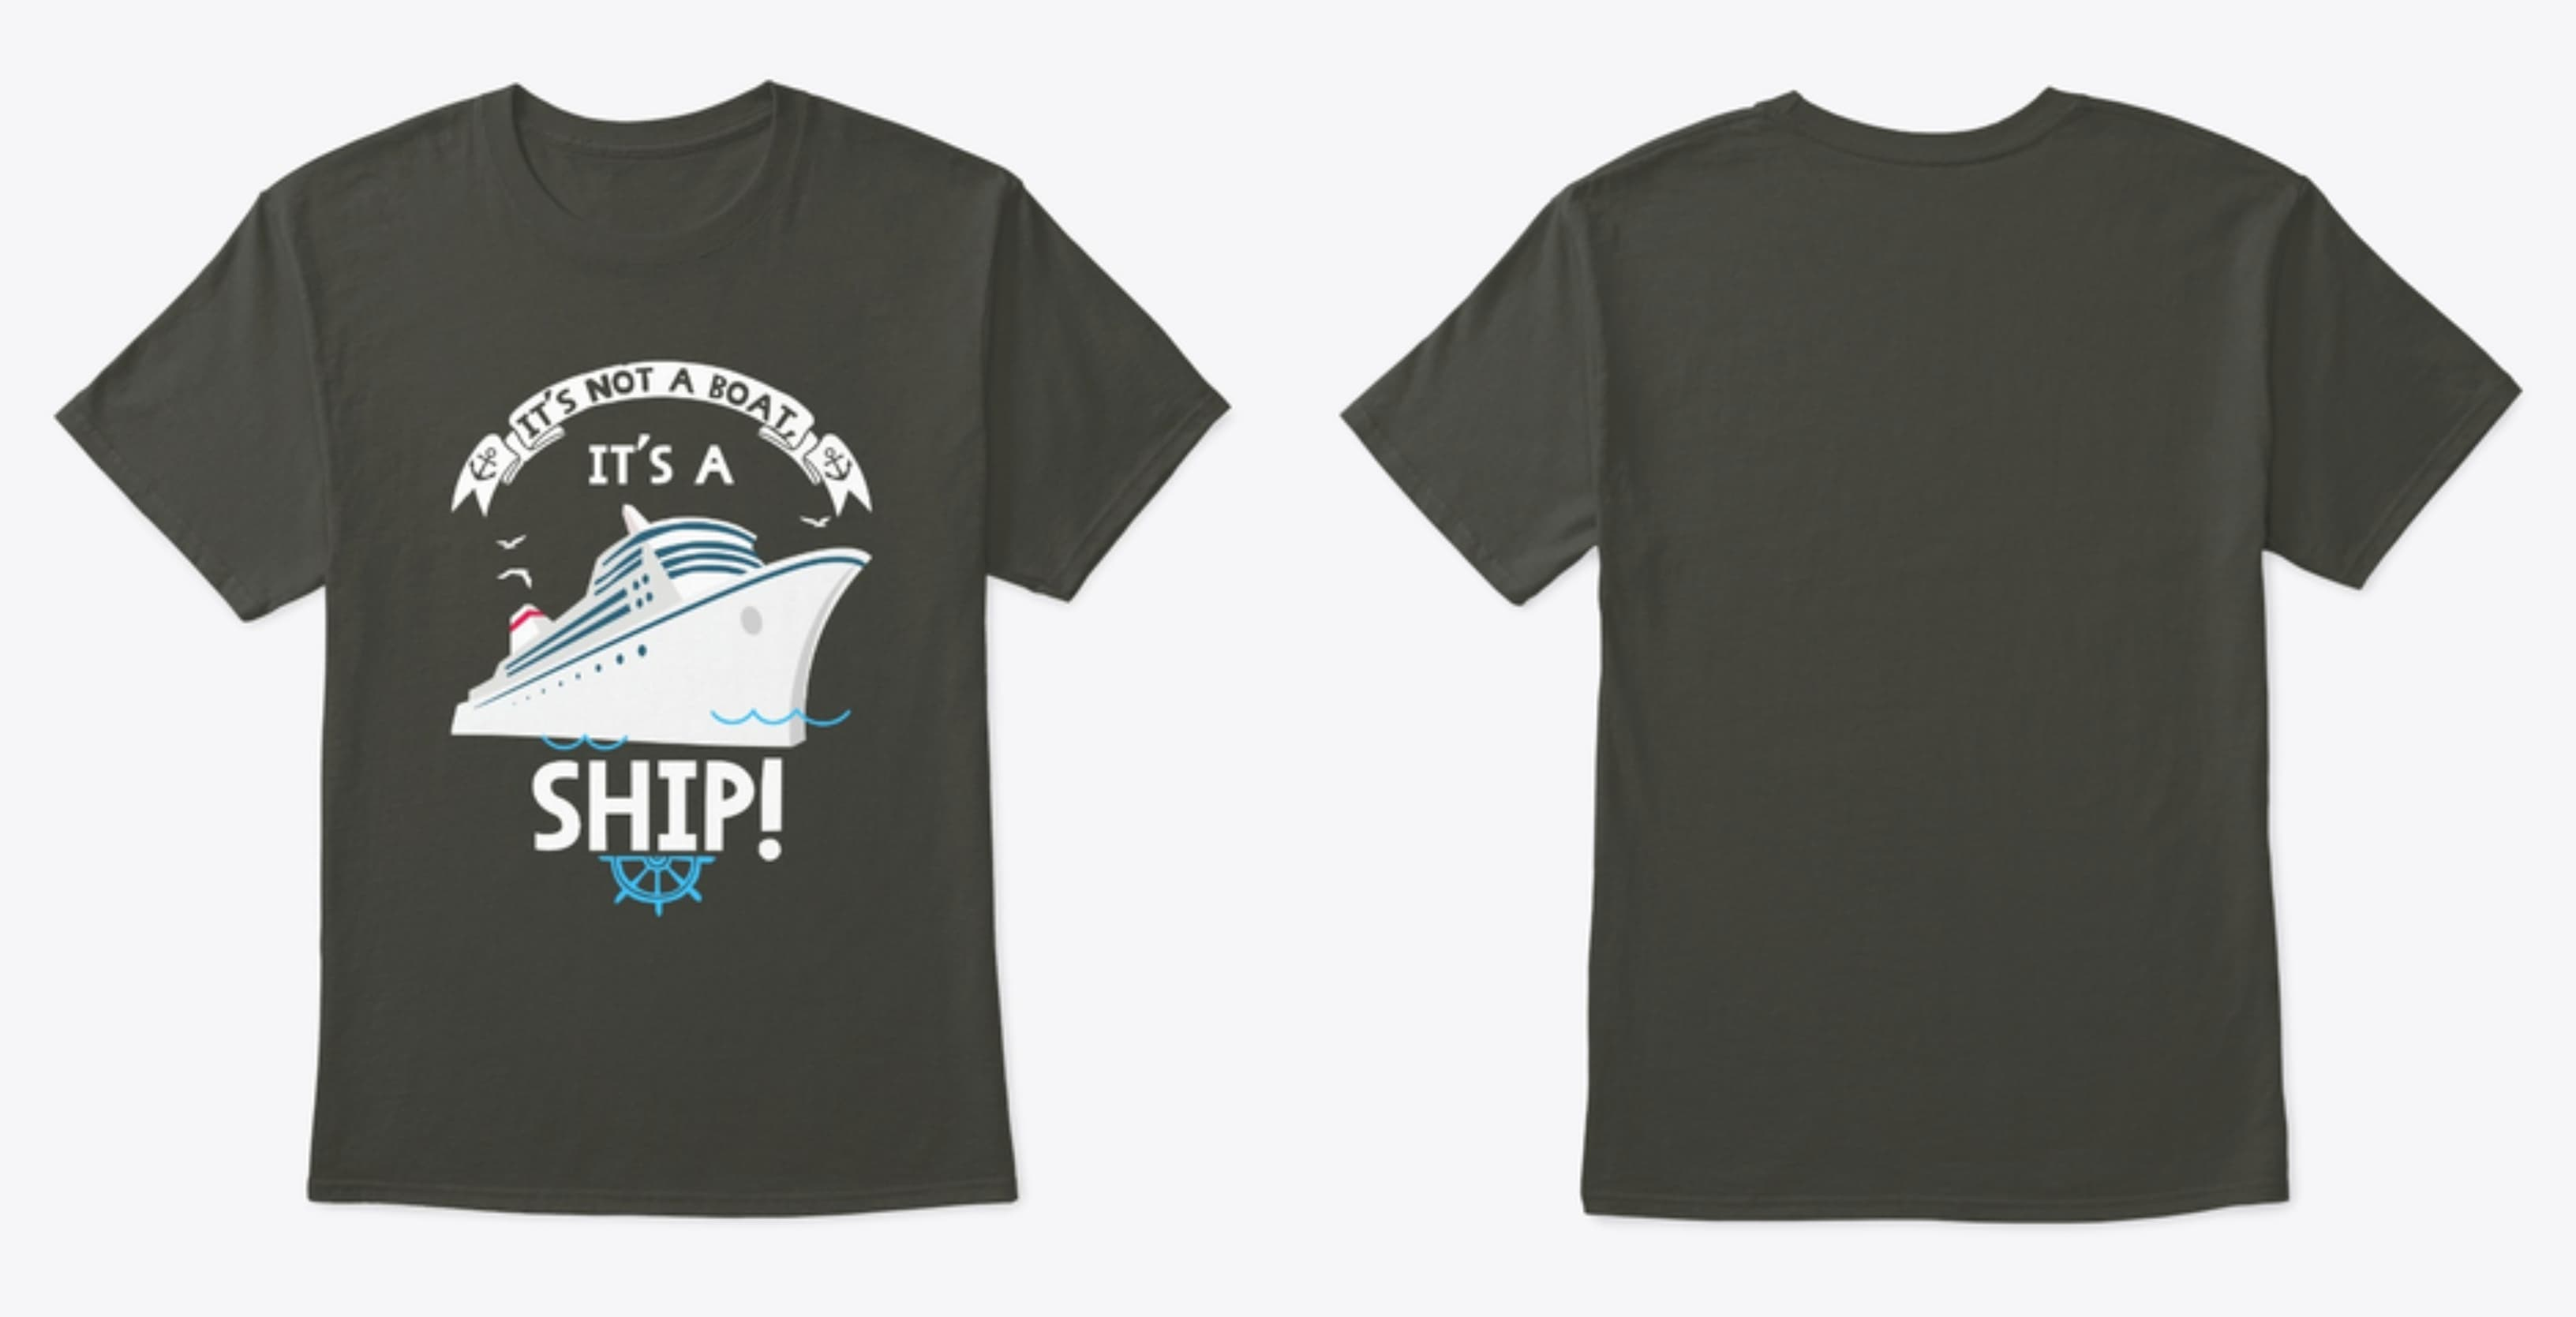 Funny Cruise Tshirt. It's not a boat, it's a ship!